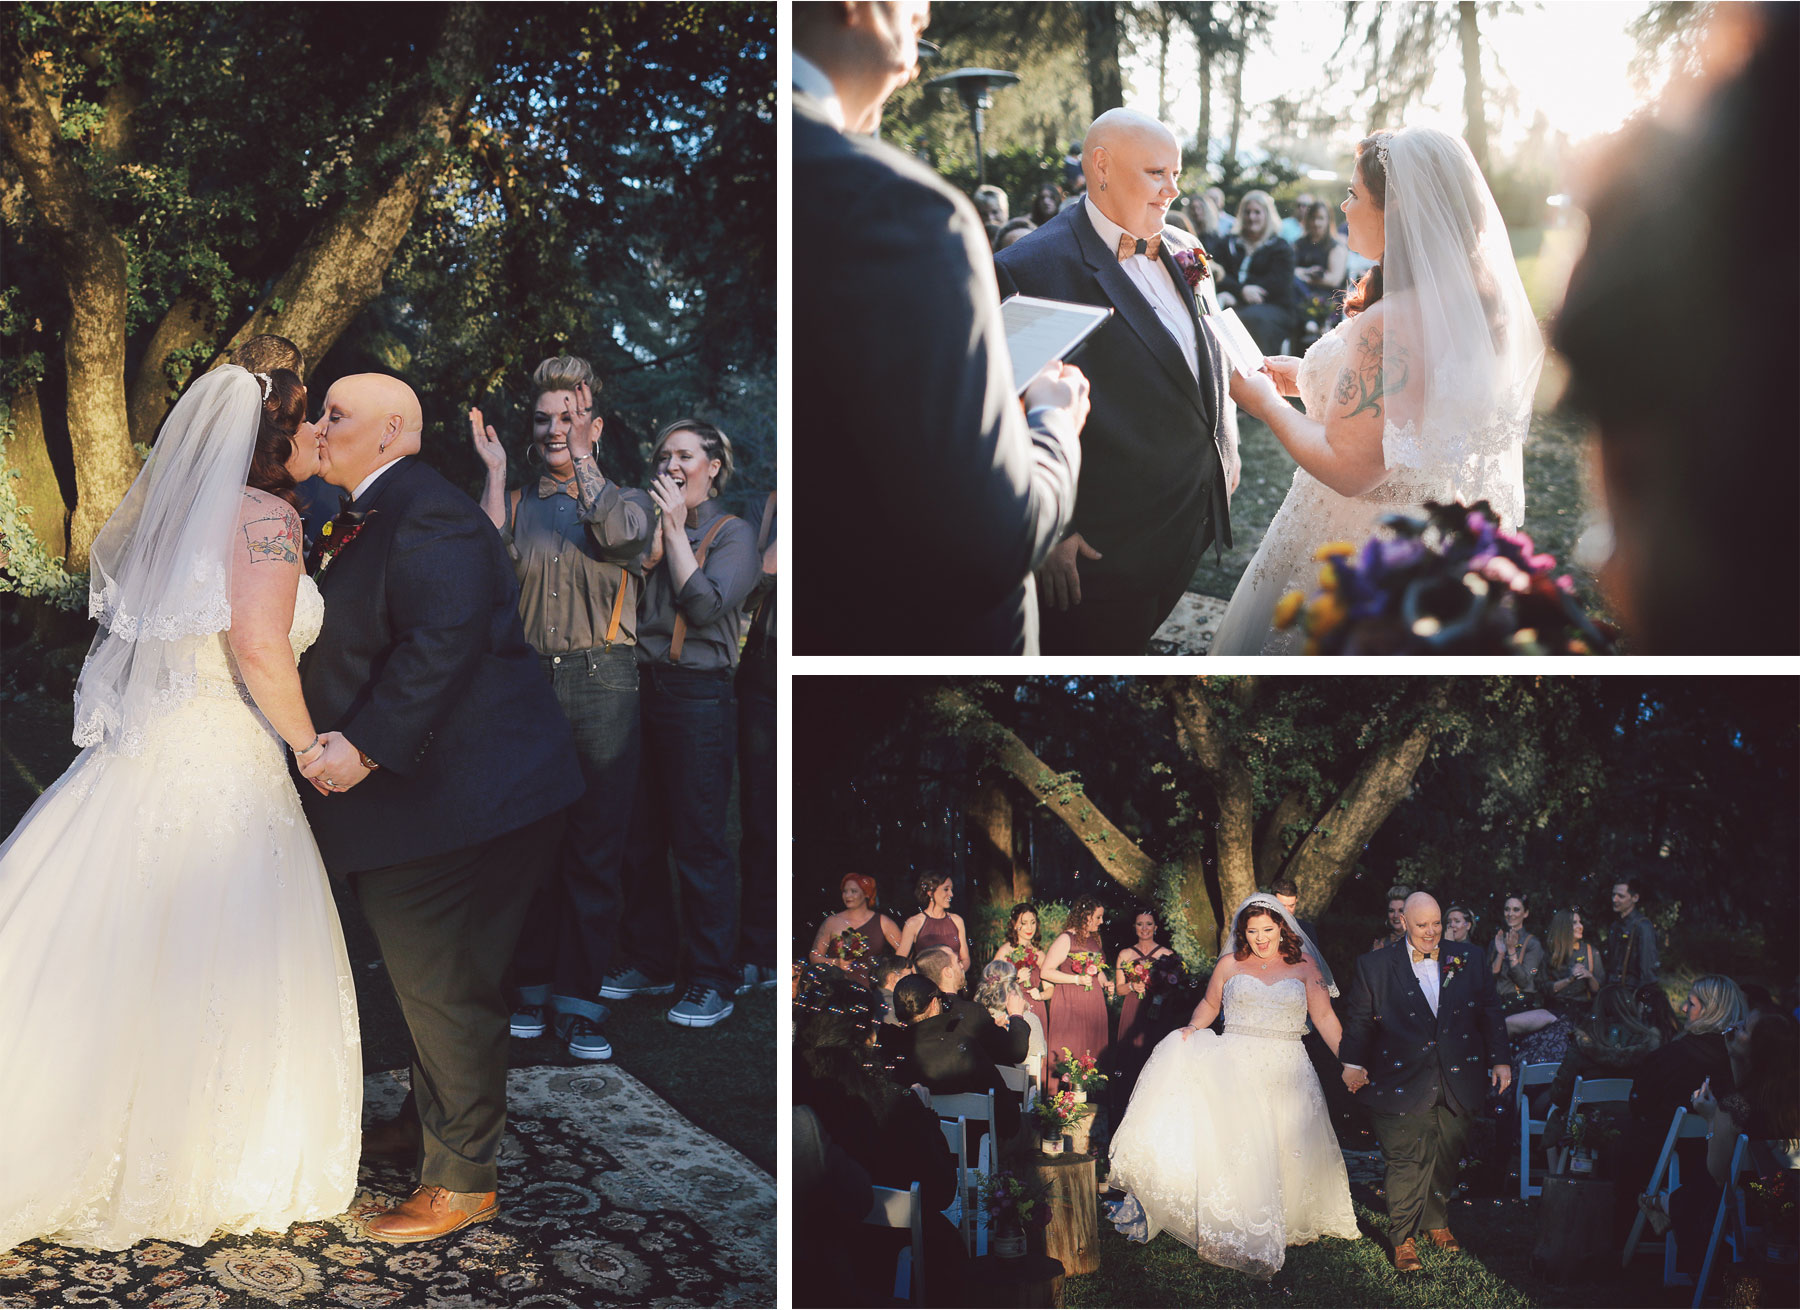 16-Los-Angeles-California-Wedding-Photographer-by-Vick-Photography-Highland-Springs-Ranch-LGBT-Outdoor-Ceremony-Trees-Rebecca-and-Terri.jpg